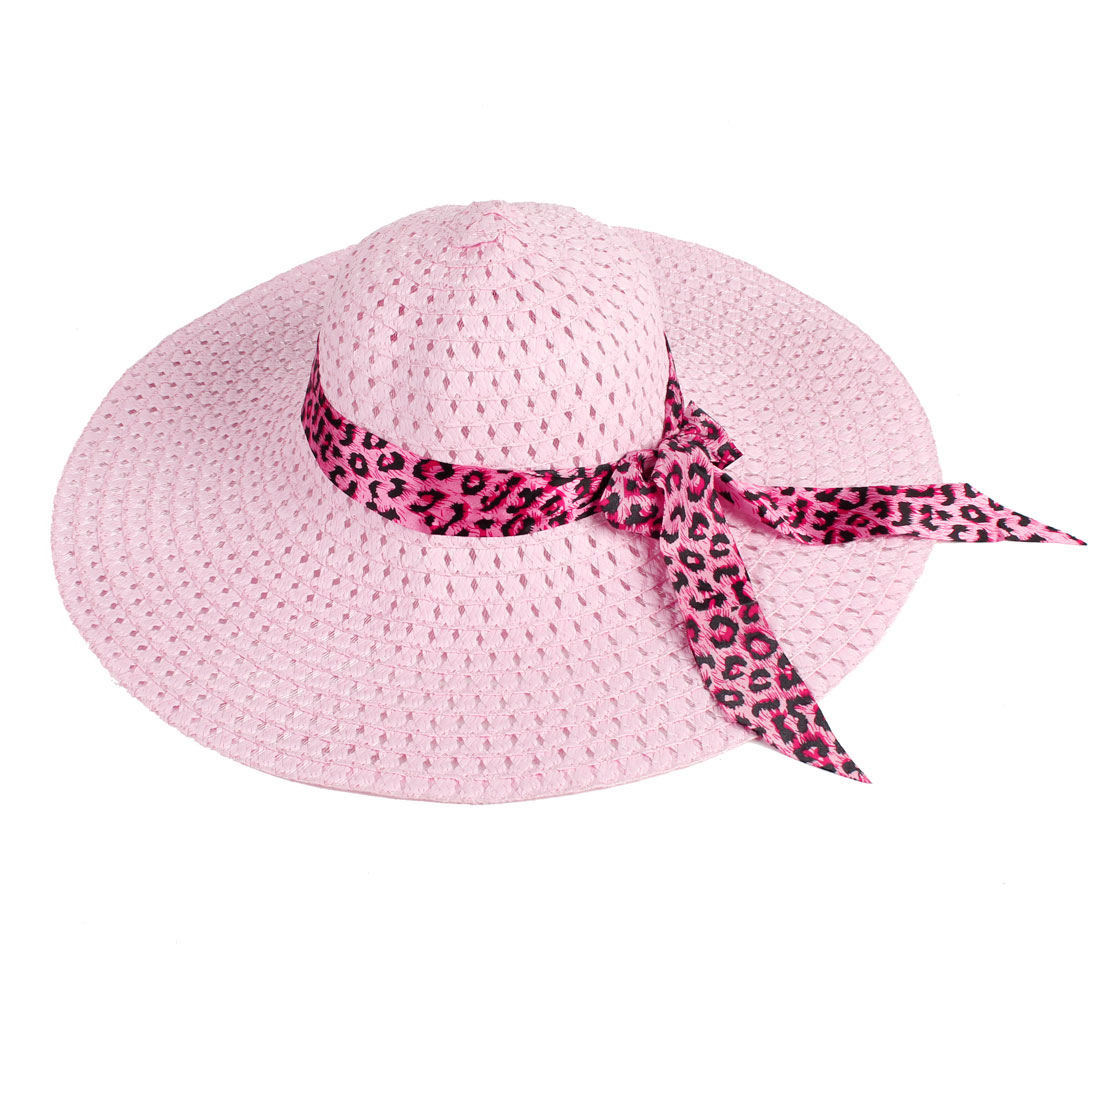 Elastic Strap Pink Wide Brimmed Meshy Outdoors Sports Sunbonnet Hat for Women